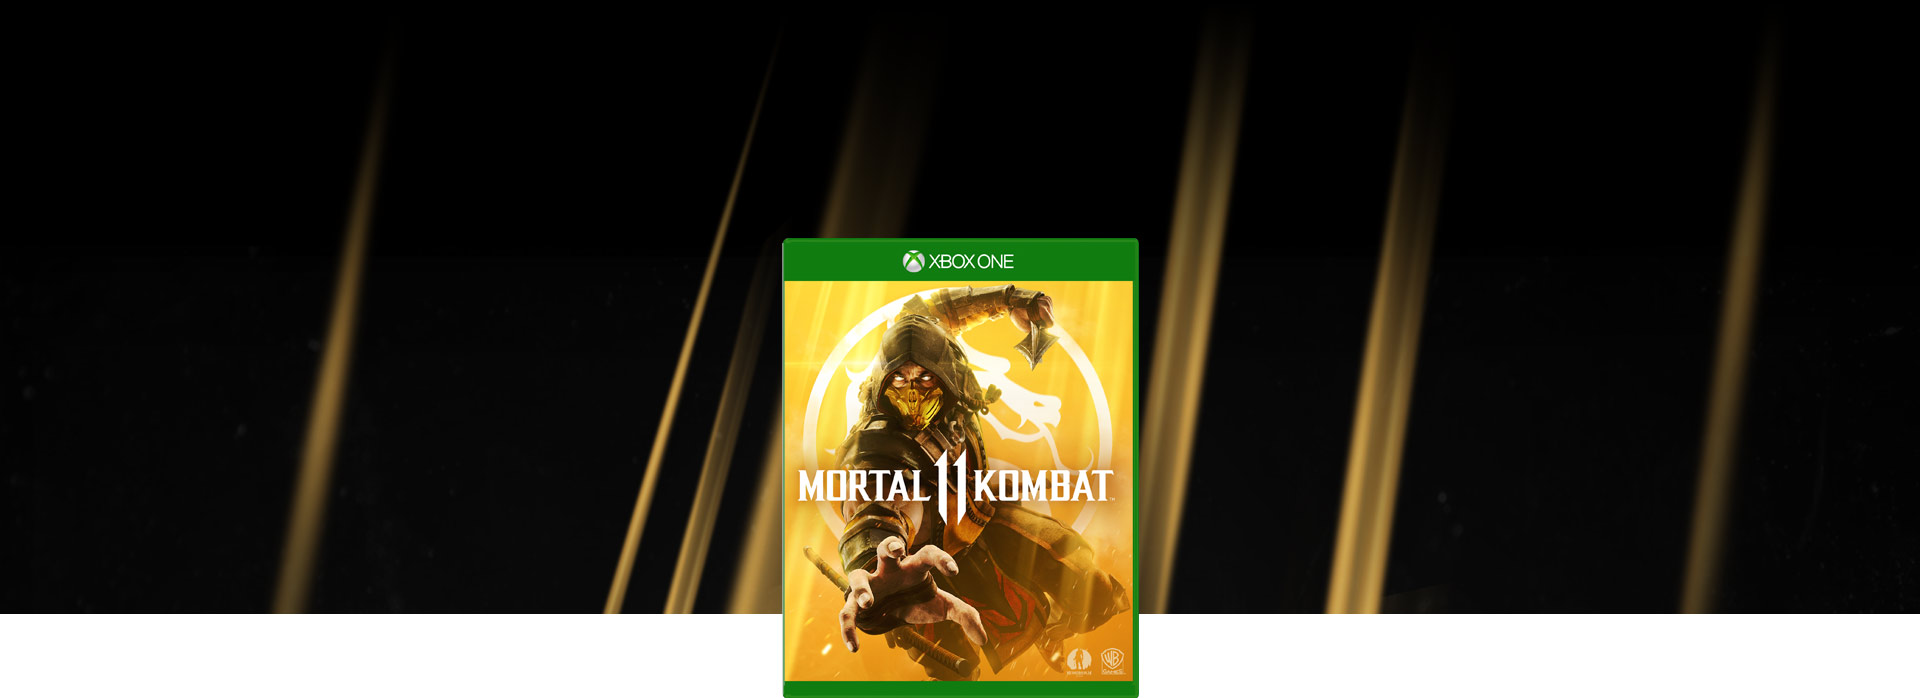 Mortal Kombat 11 boxshot, background of Scorpion as he throws his spear toward the screen